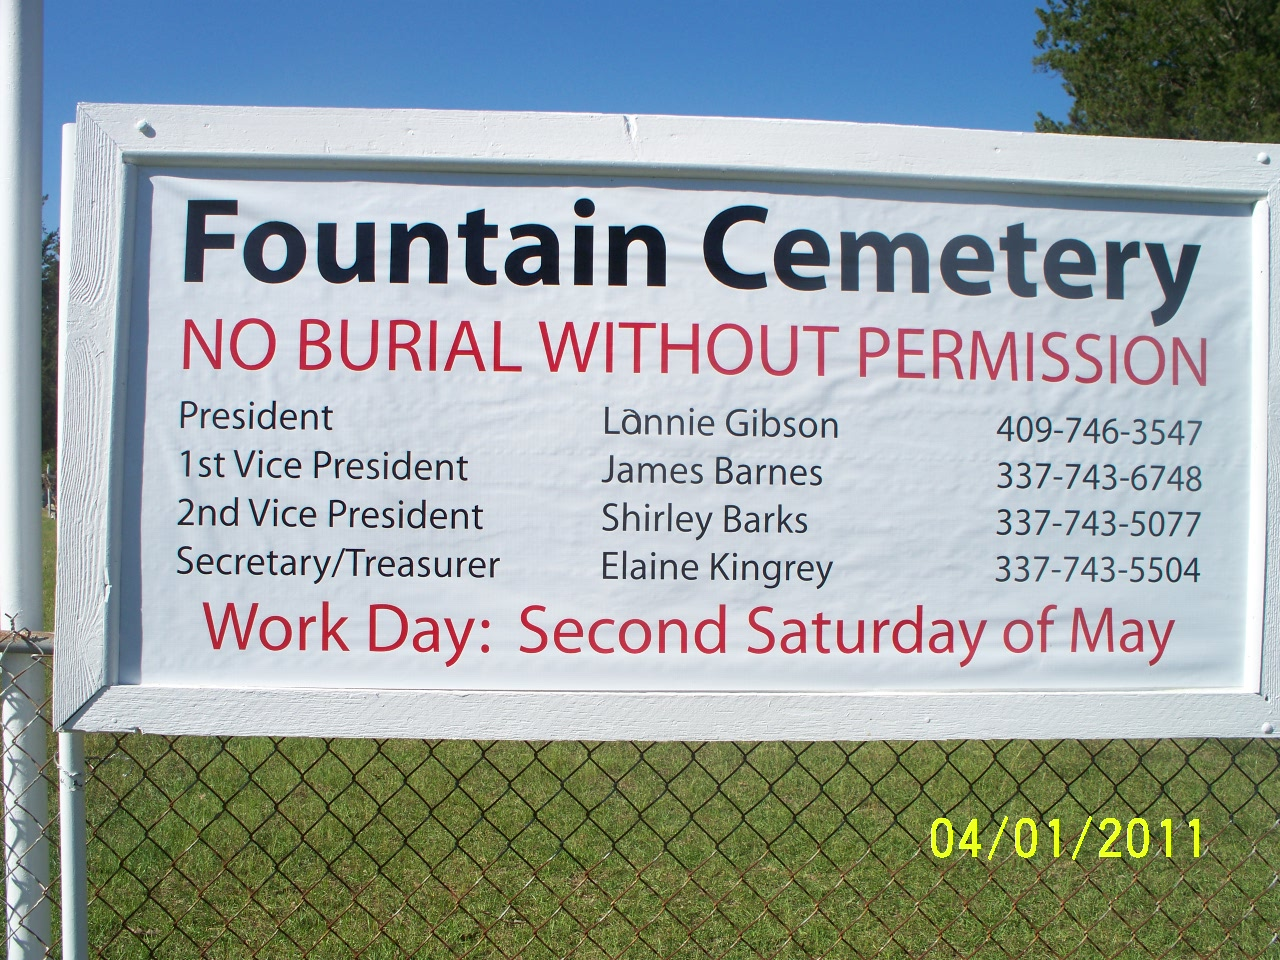 Fountain Cemetery